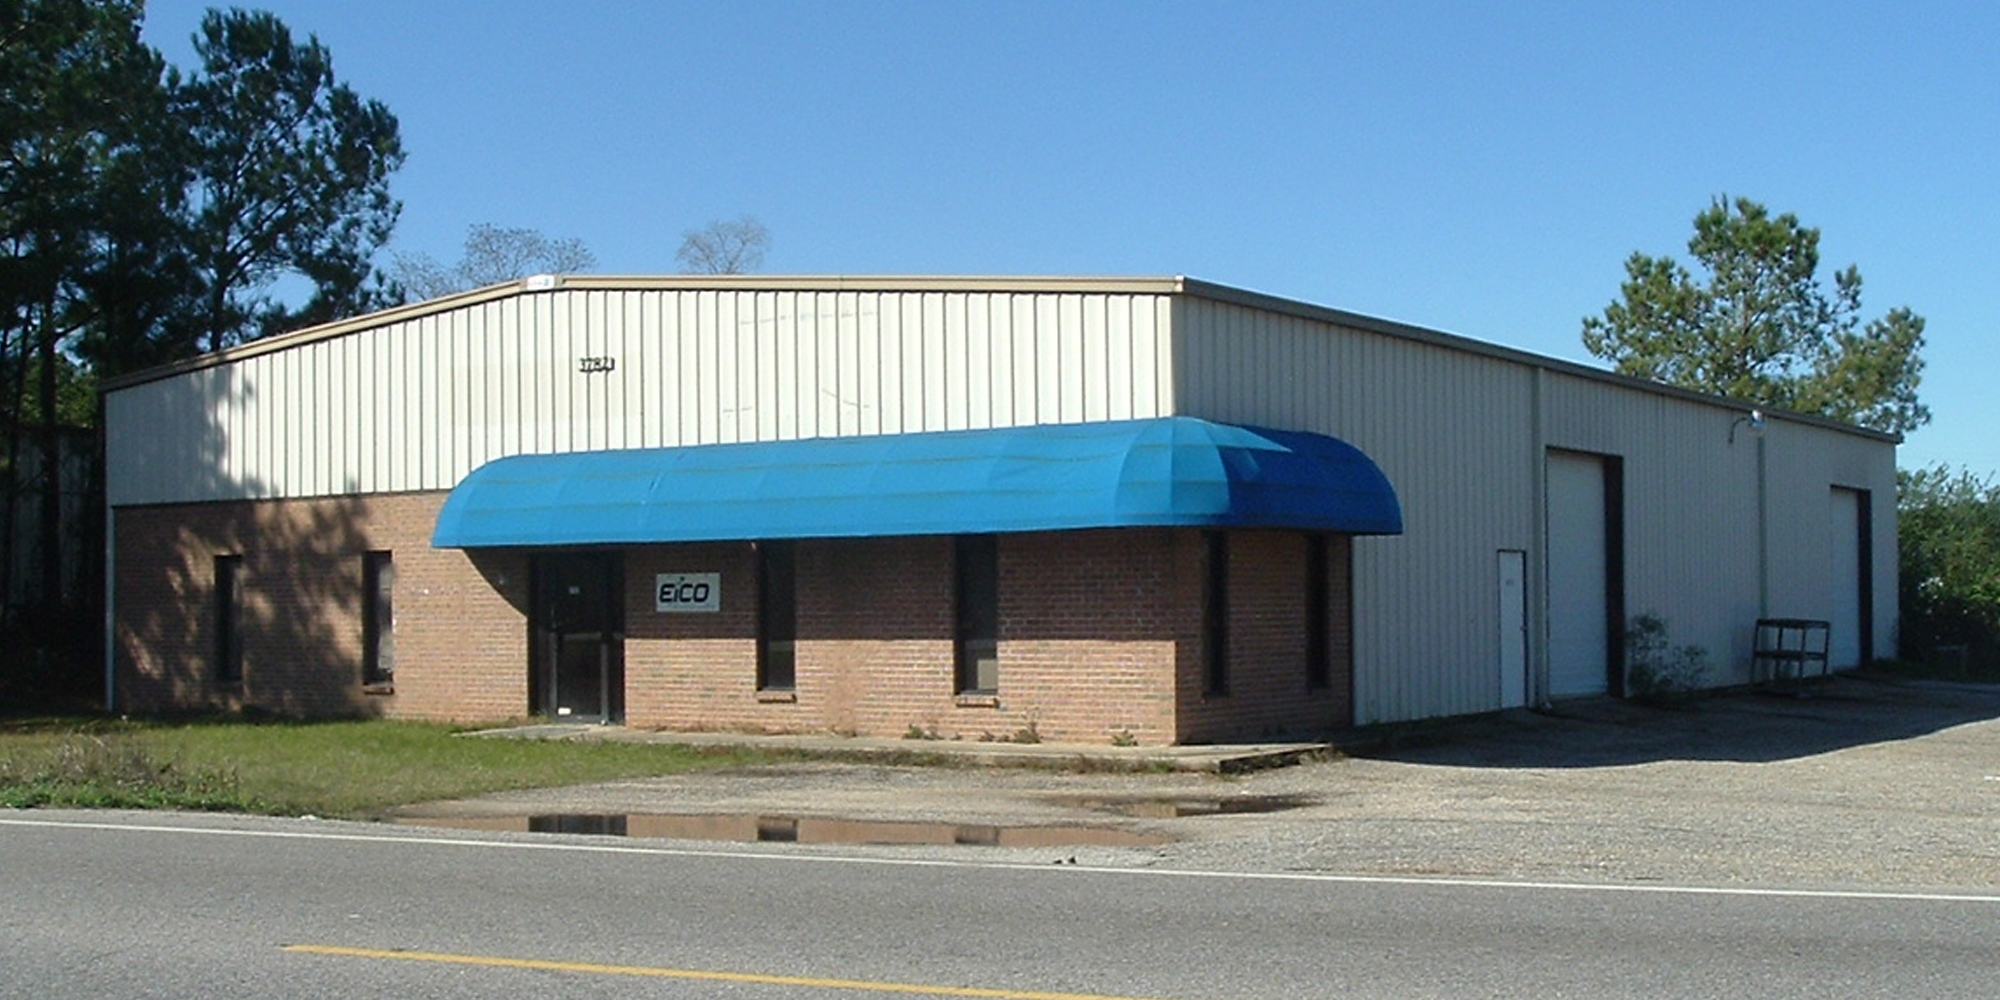 3782 Halls Mill Road - WAREHOUSEA 6,000± square foot metal office/warehouse with 900± square feet of office space and 5,100± square feet of warehouse space. The building is 100% occupied.Tenant: Mark's Automotive